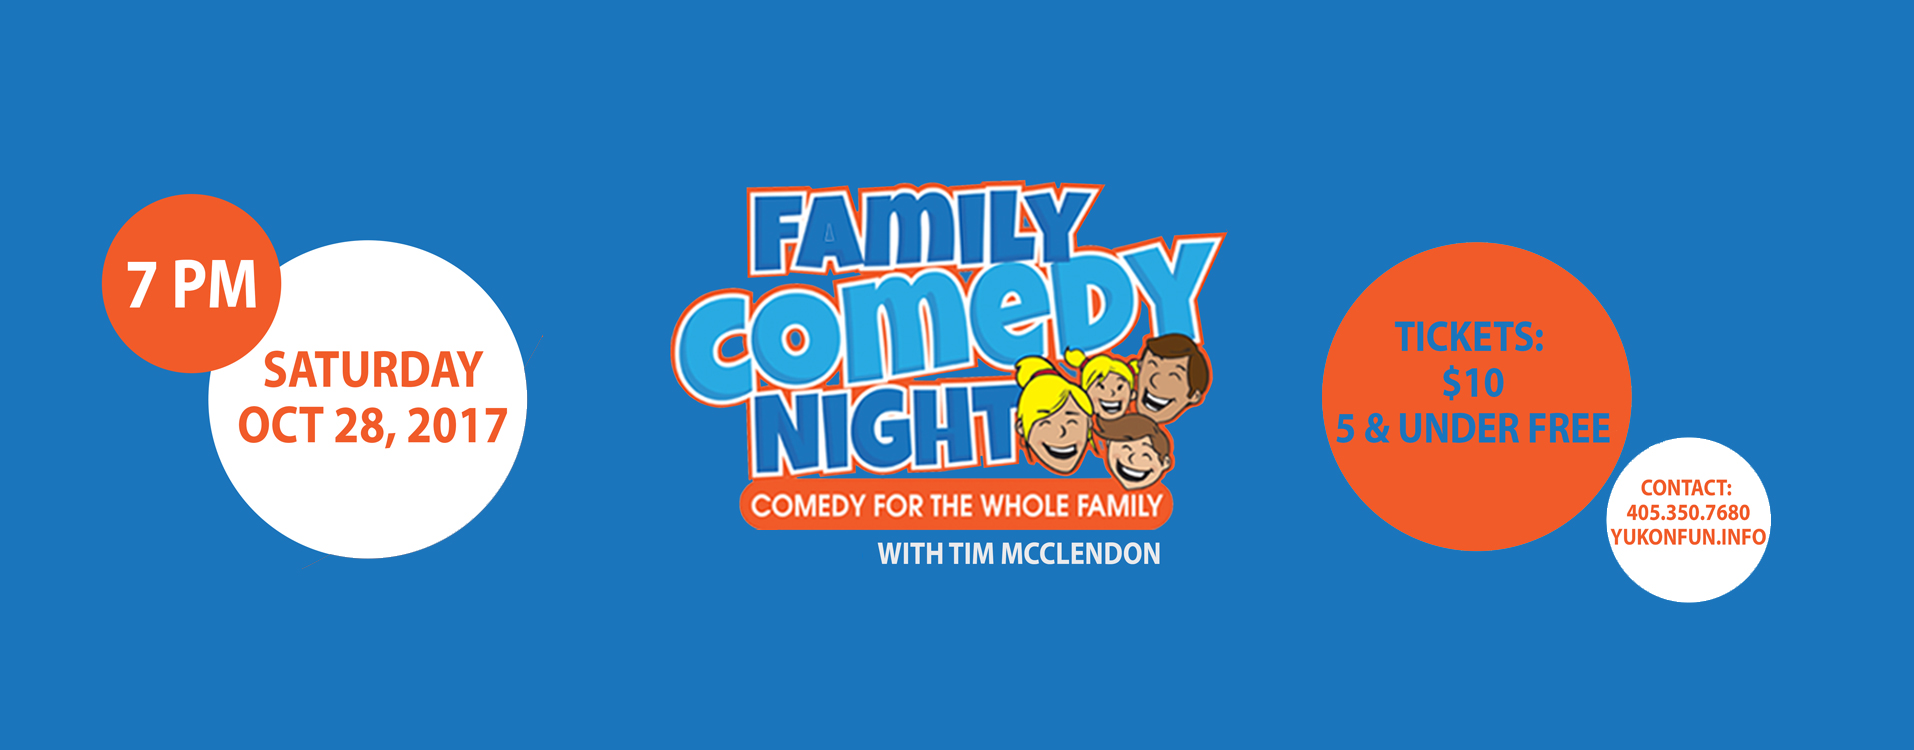 family-comedy-night